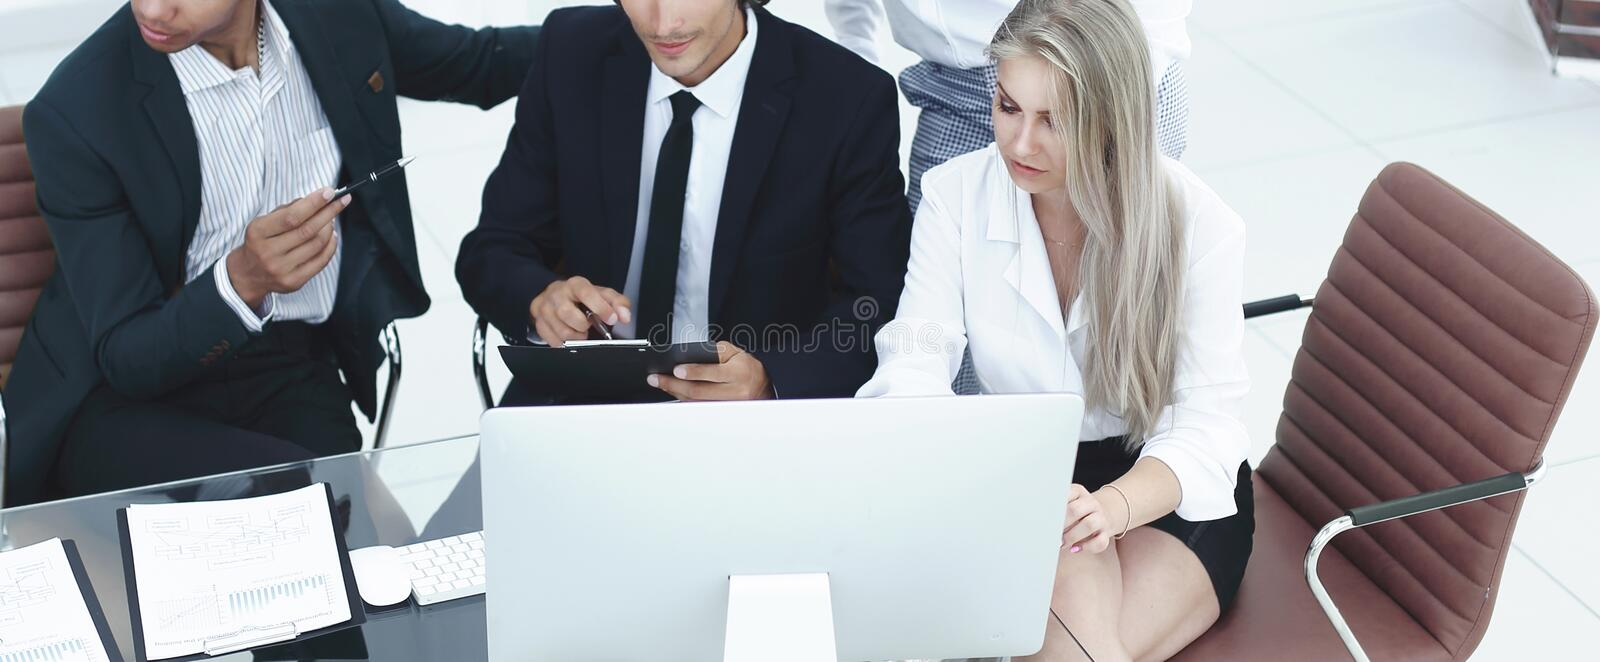 Closeup. international business team discussing business issues. stock photo